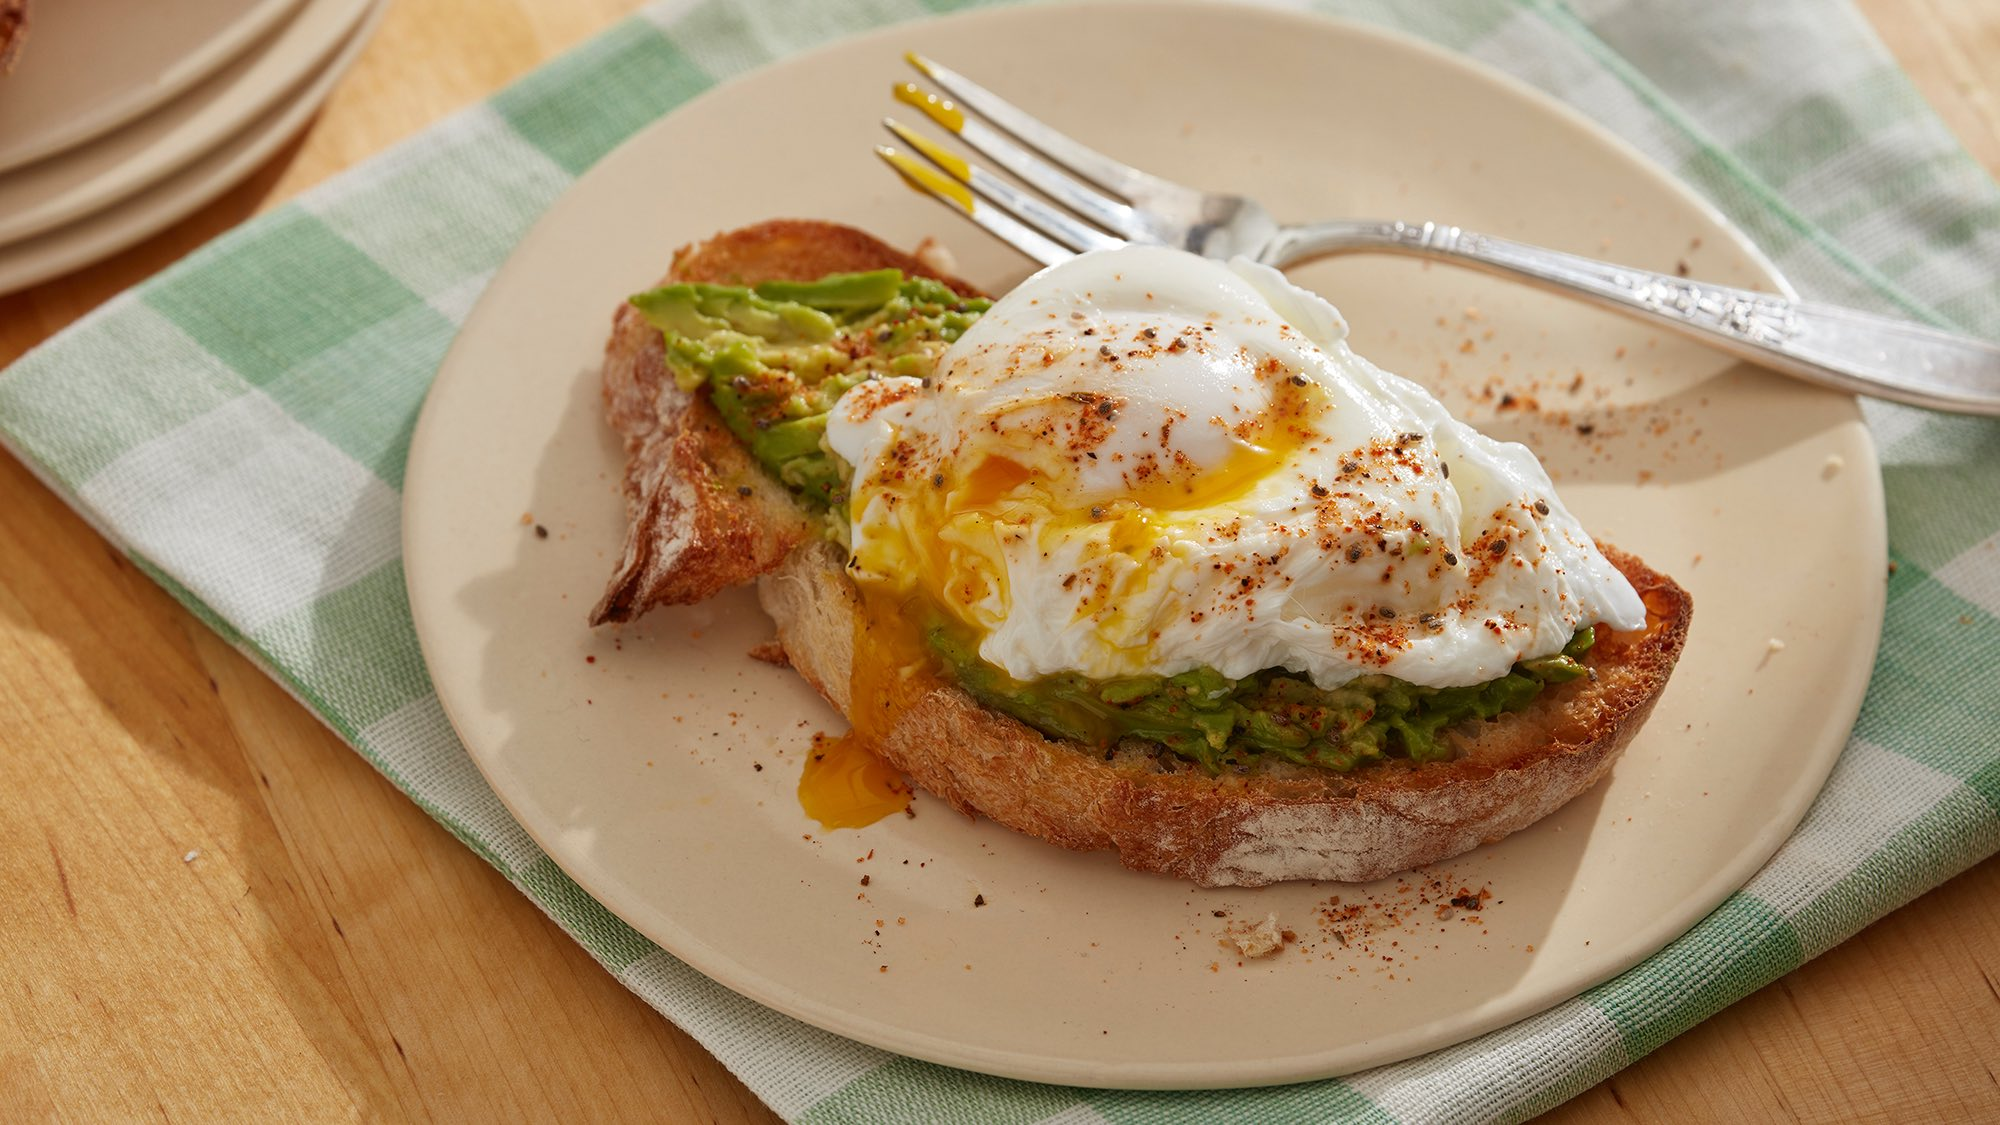 McCormick Gourmet Poached Eggs with Avocado Toast